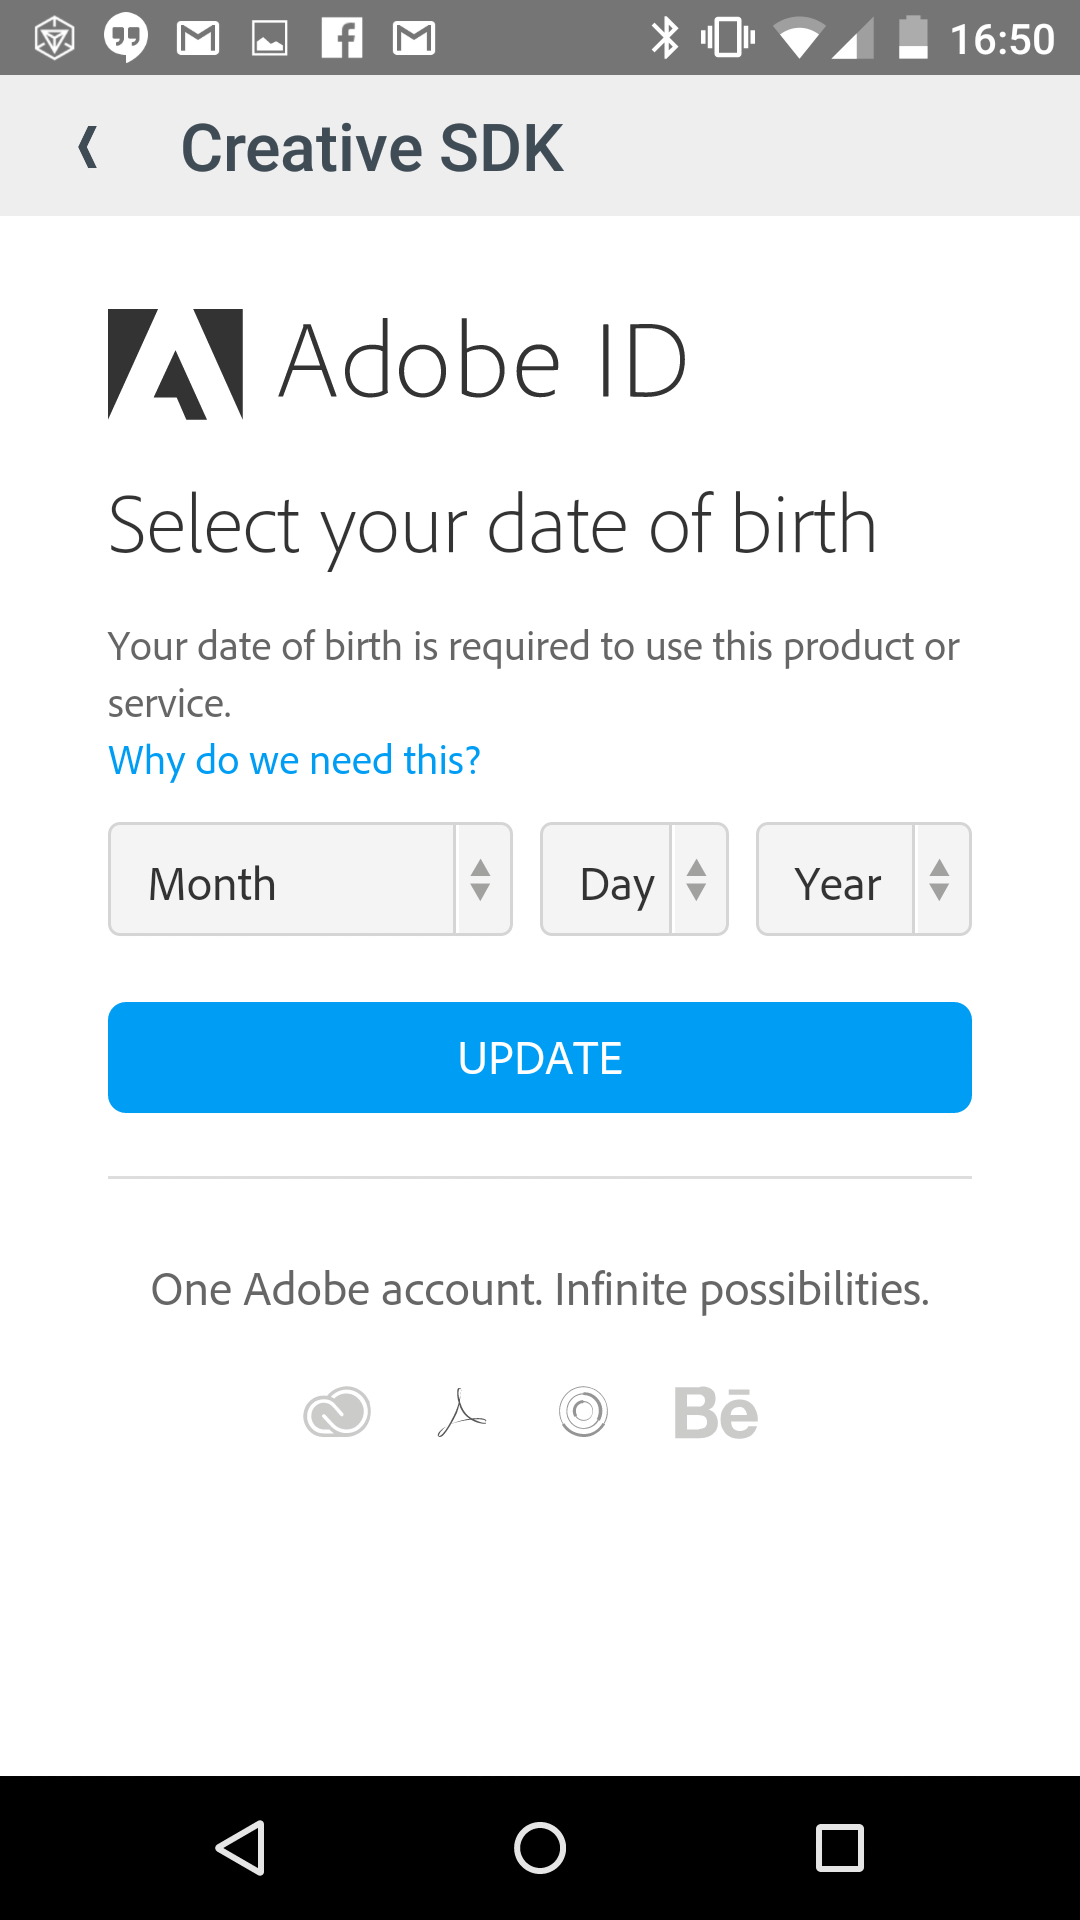 For some reason Adobe wants your date of birth.